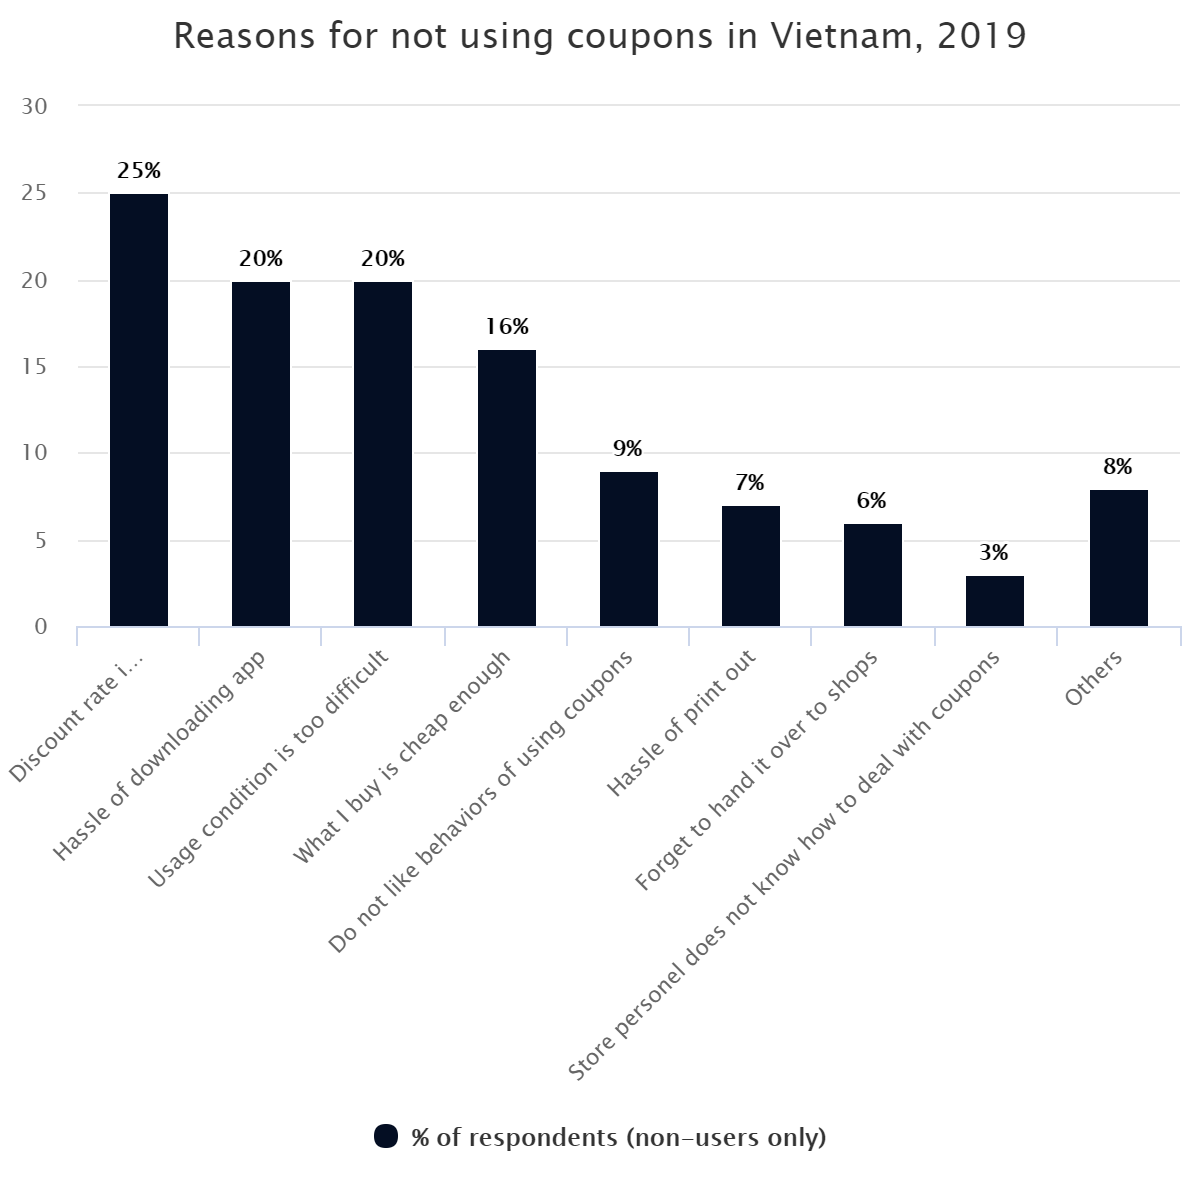 Reasons for not using coupons in Vietnam, 2019